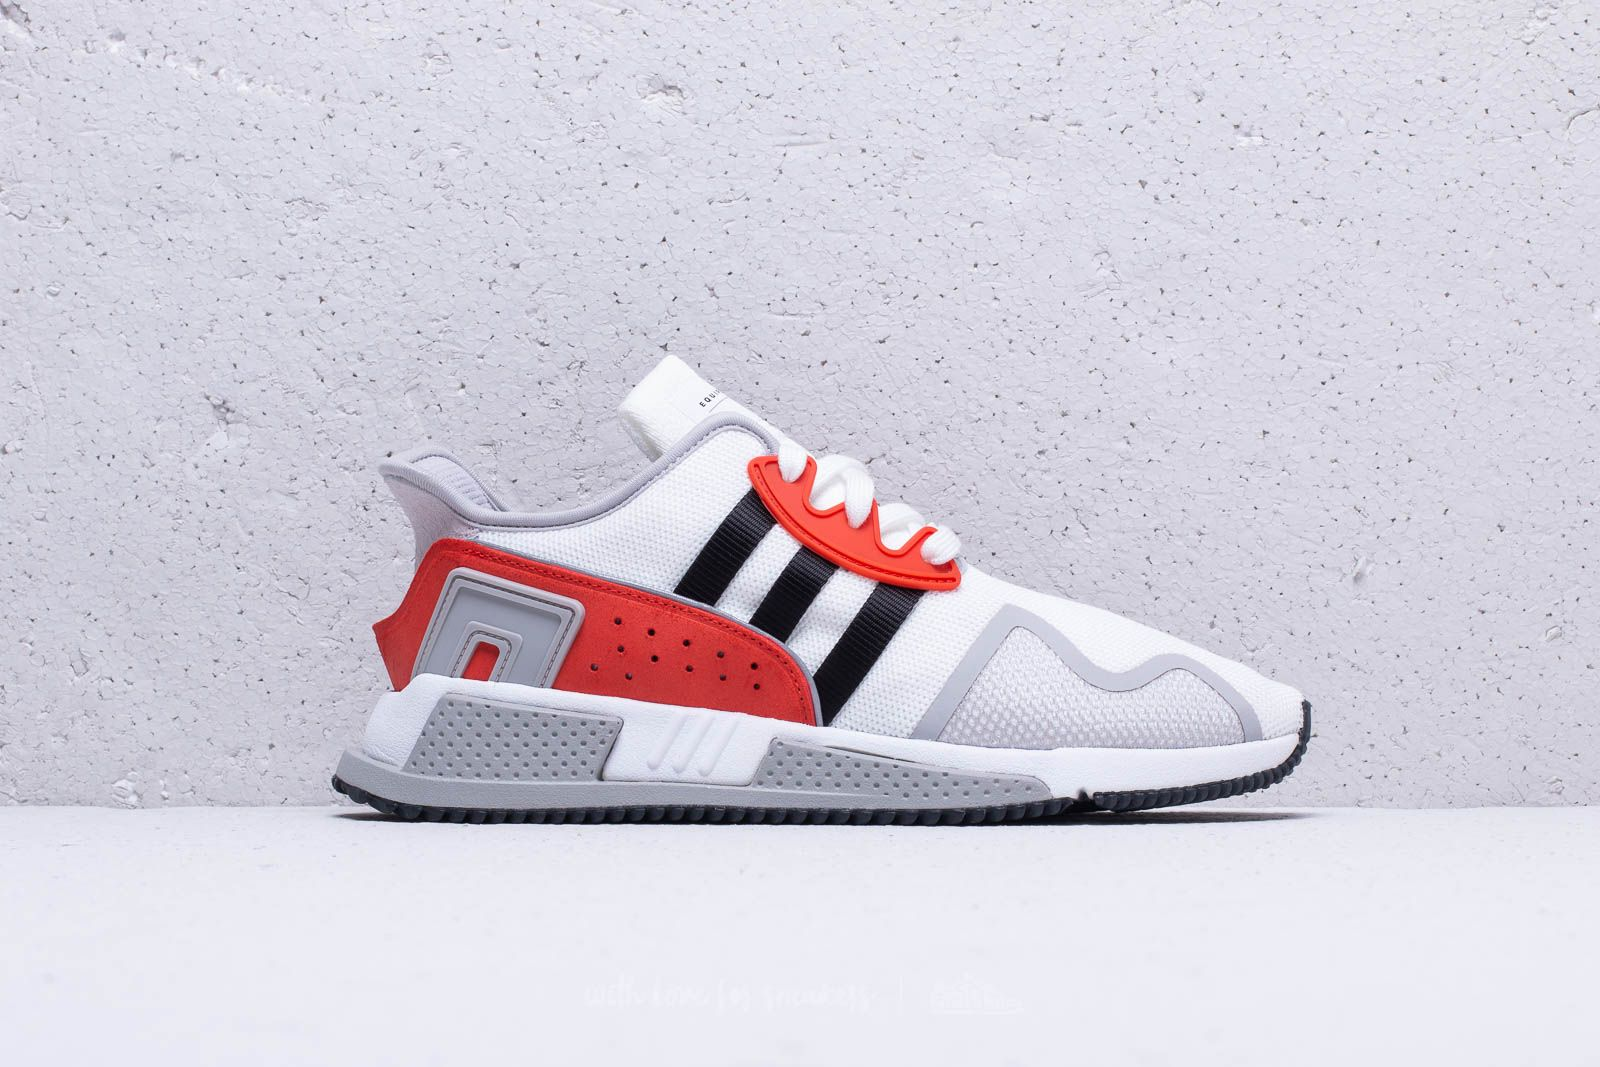 detailed look df616 5d13b adidas EQT Cushion ADV Ftw White  Core Black  Hi-Res Red la un